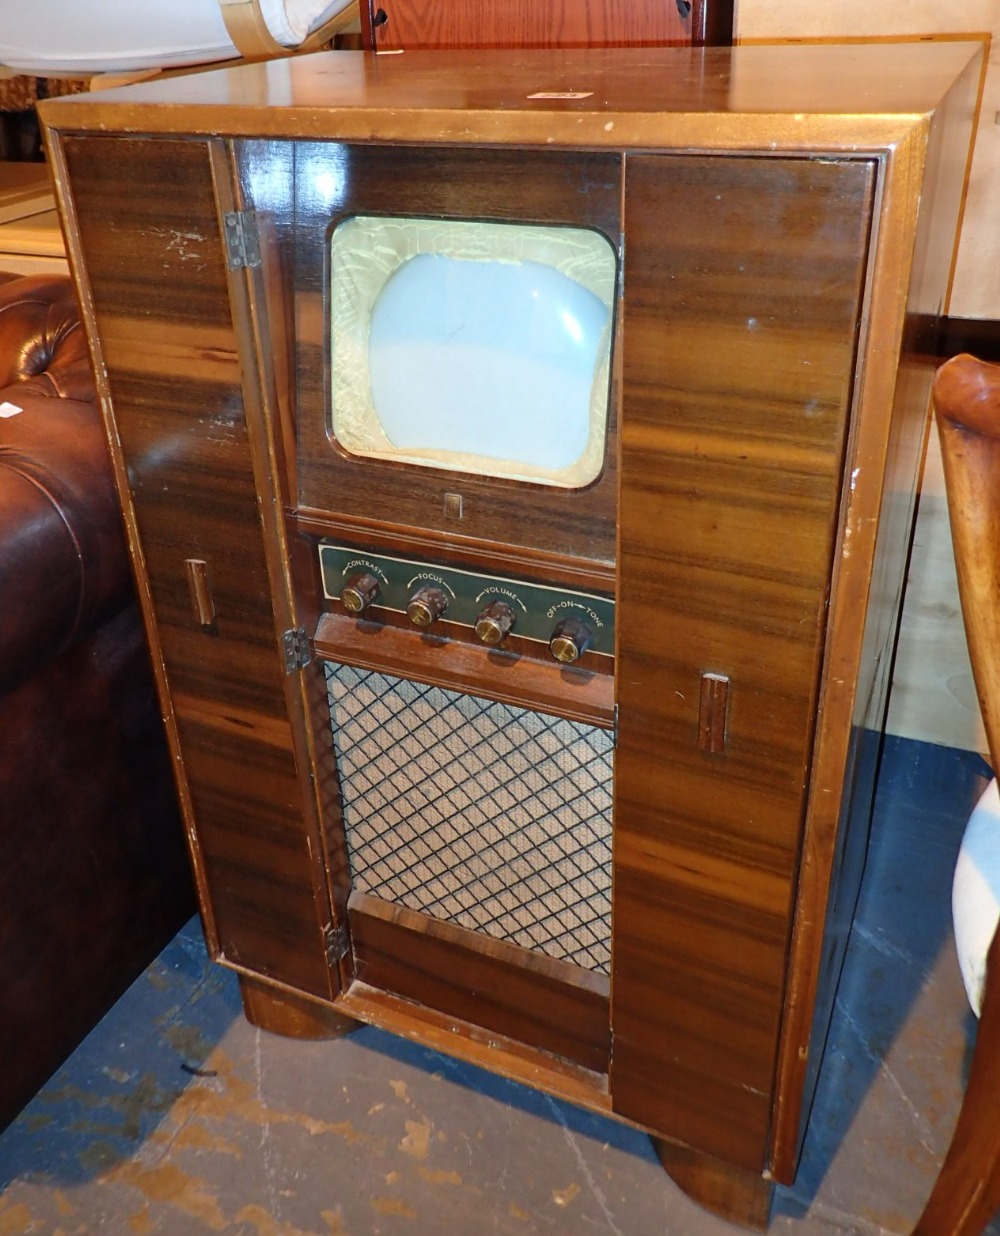 Philco television in a fitted stand